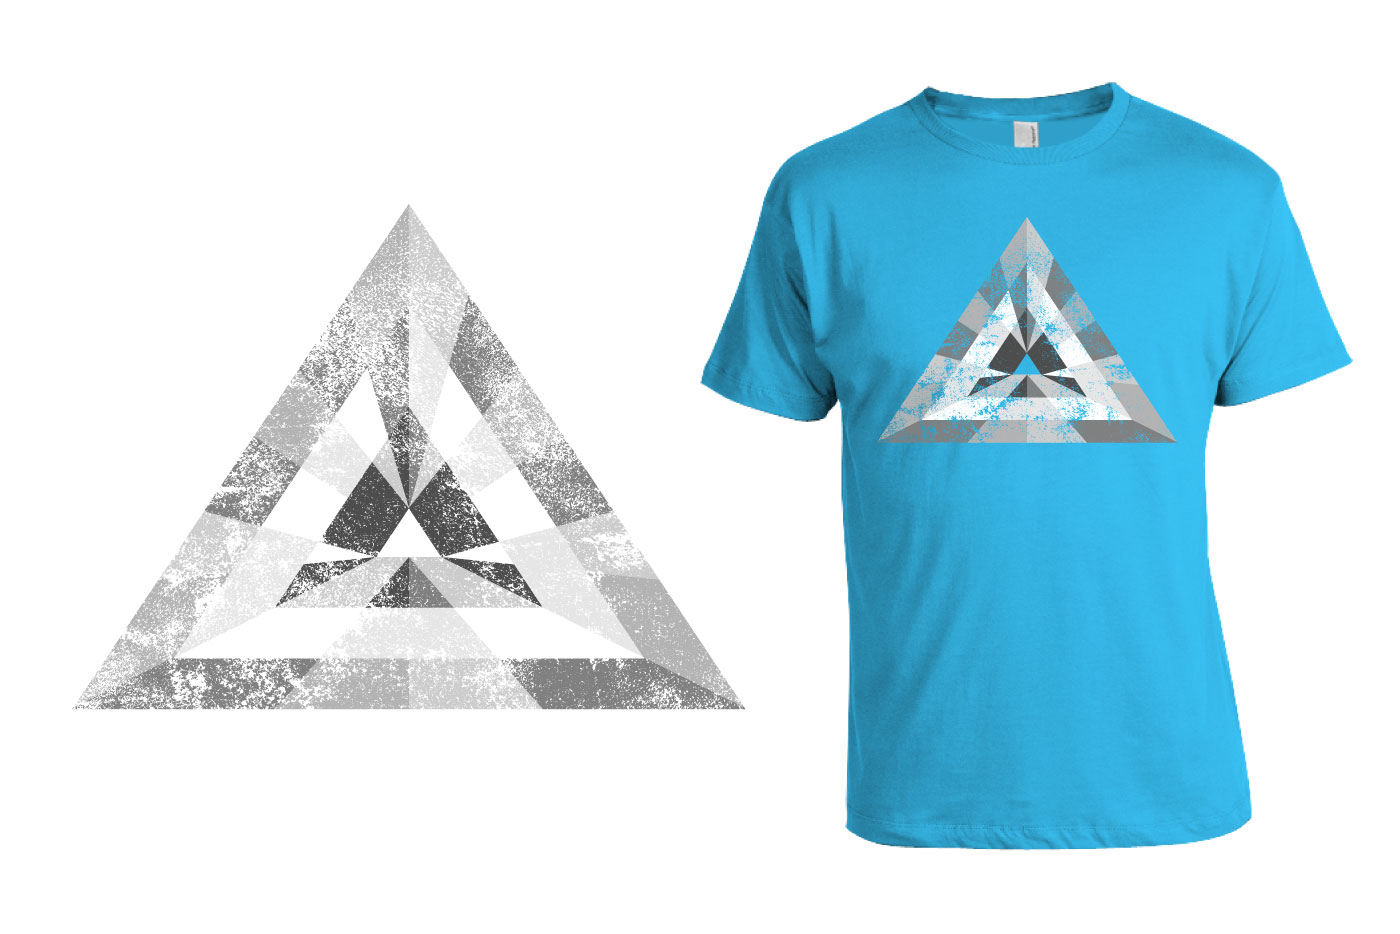 triangle t-shirt graphic